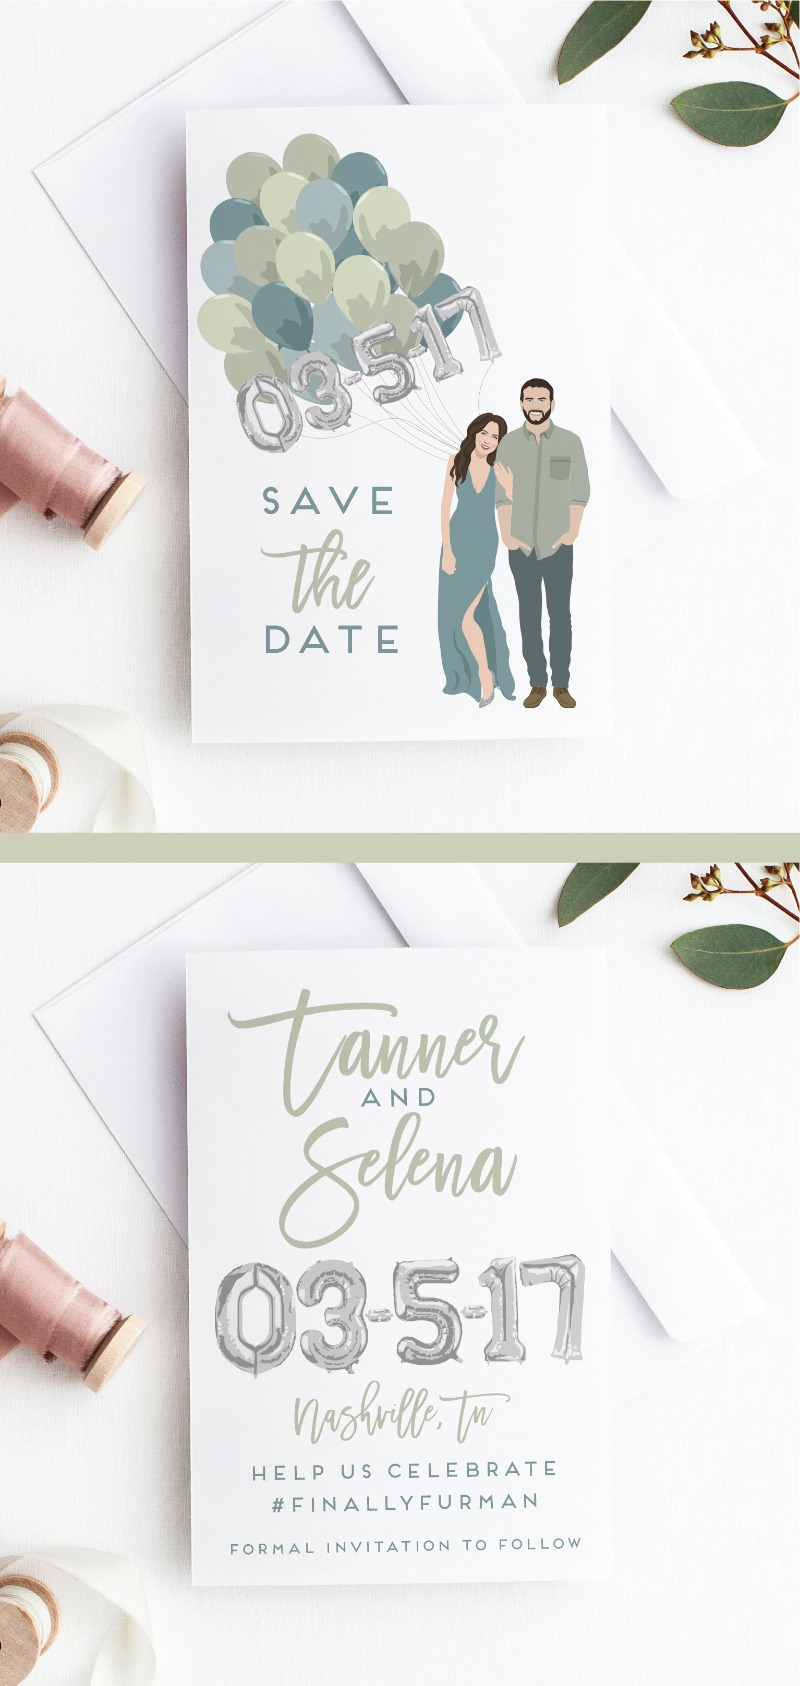 A brand new style in our portrait save the date collection, featuring illustrated balloons to display your date. Super modern and fun